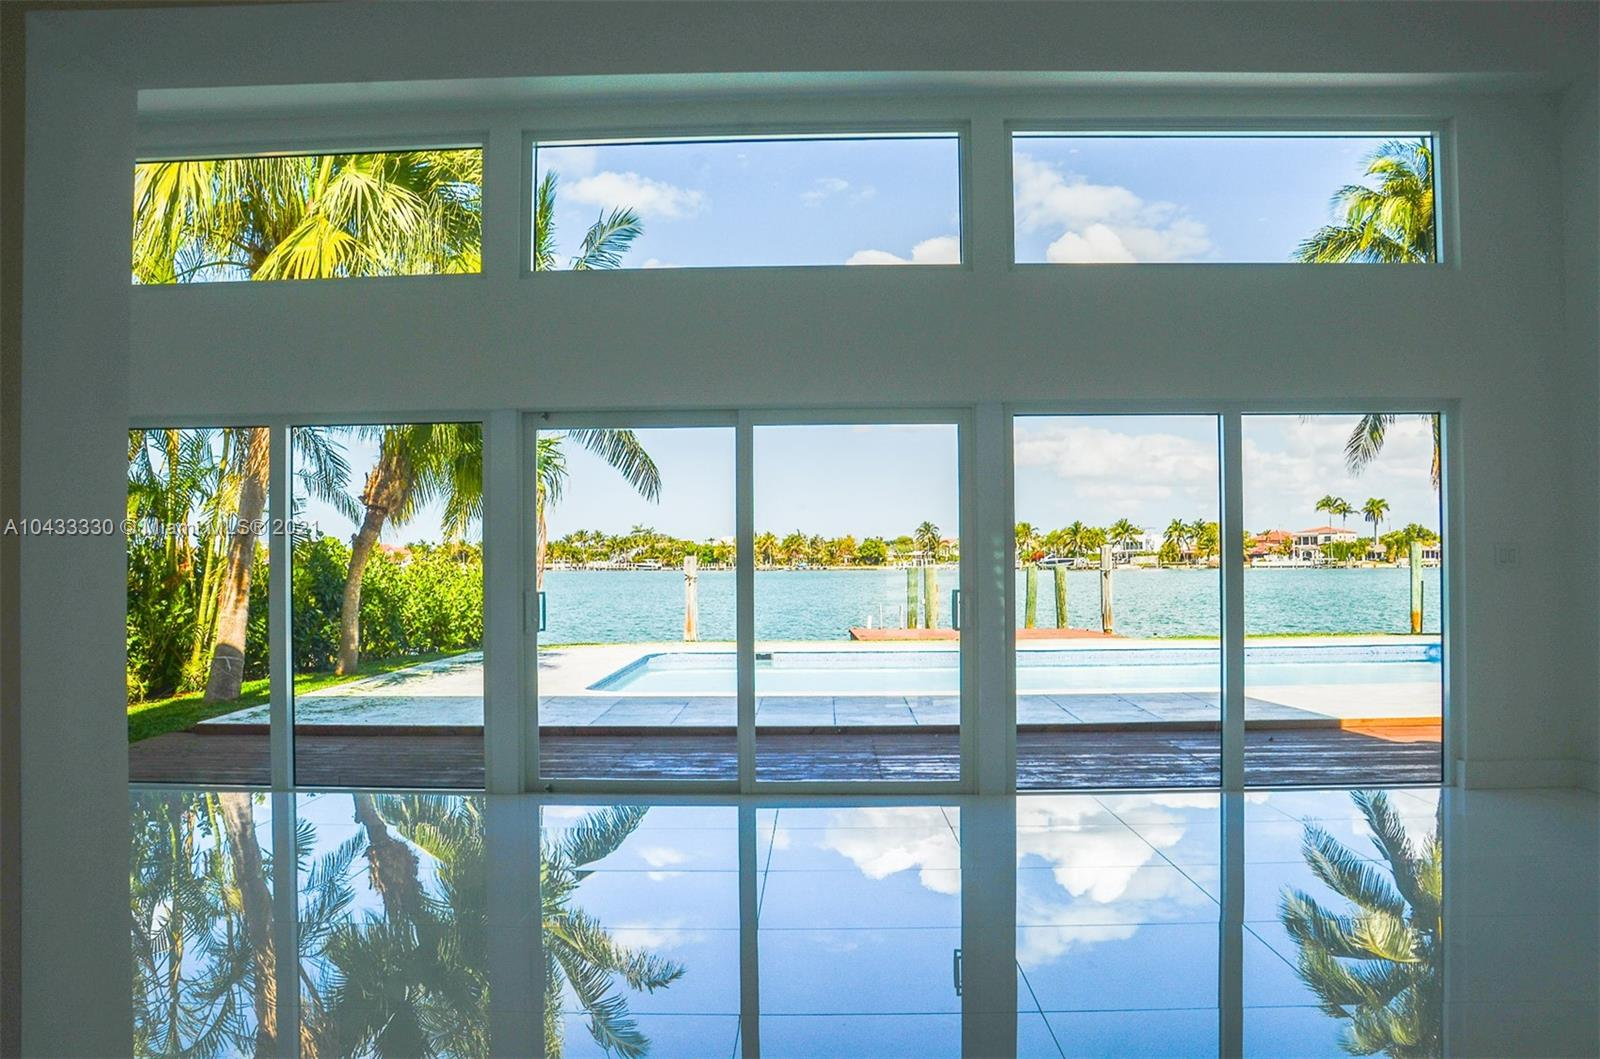 This house is idealy located in the gated community of Biscayne Point. It s a great opportunity to own at Biscayne Point with a direct Open Bay access, ready to move in. Check the 3D virtual tour, you will get a real feeling of the house